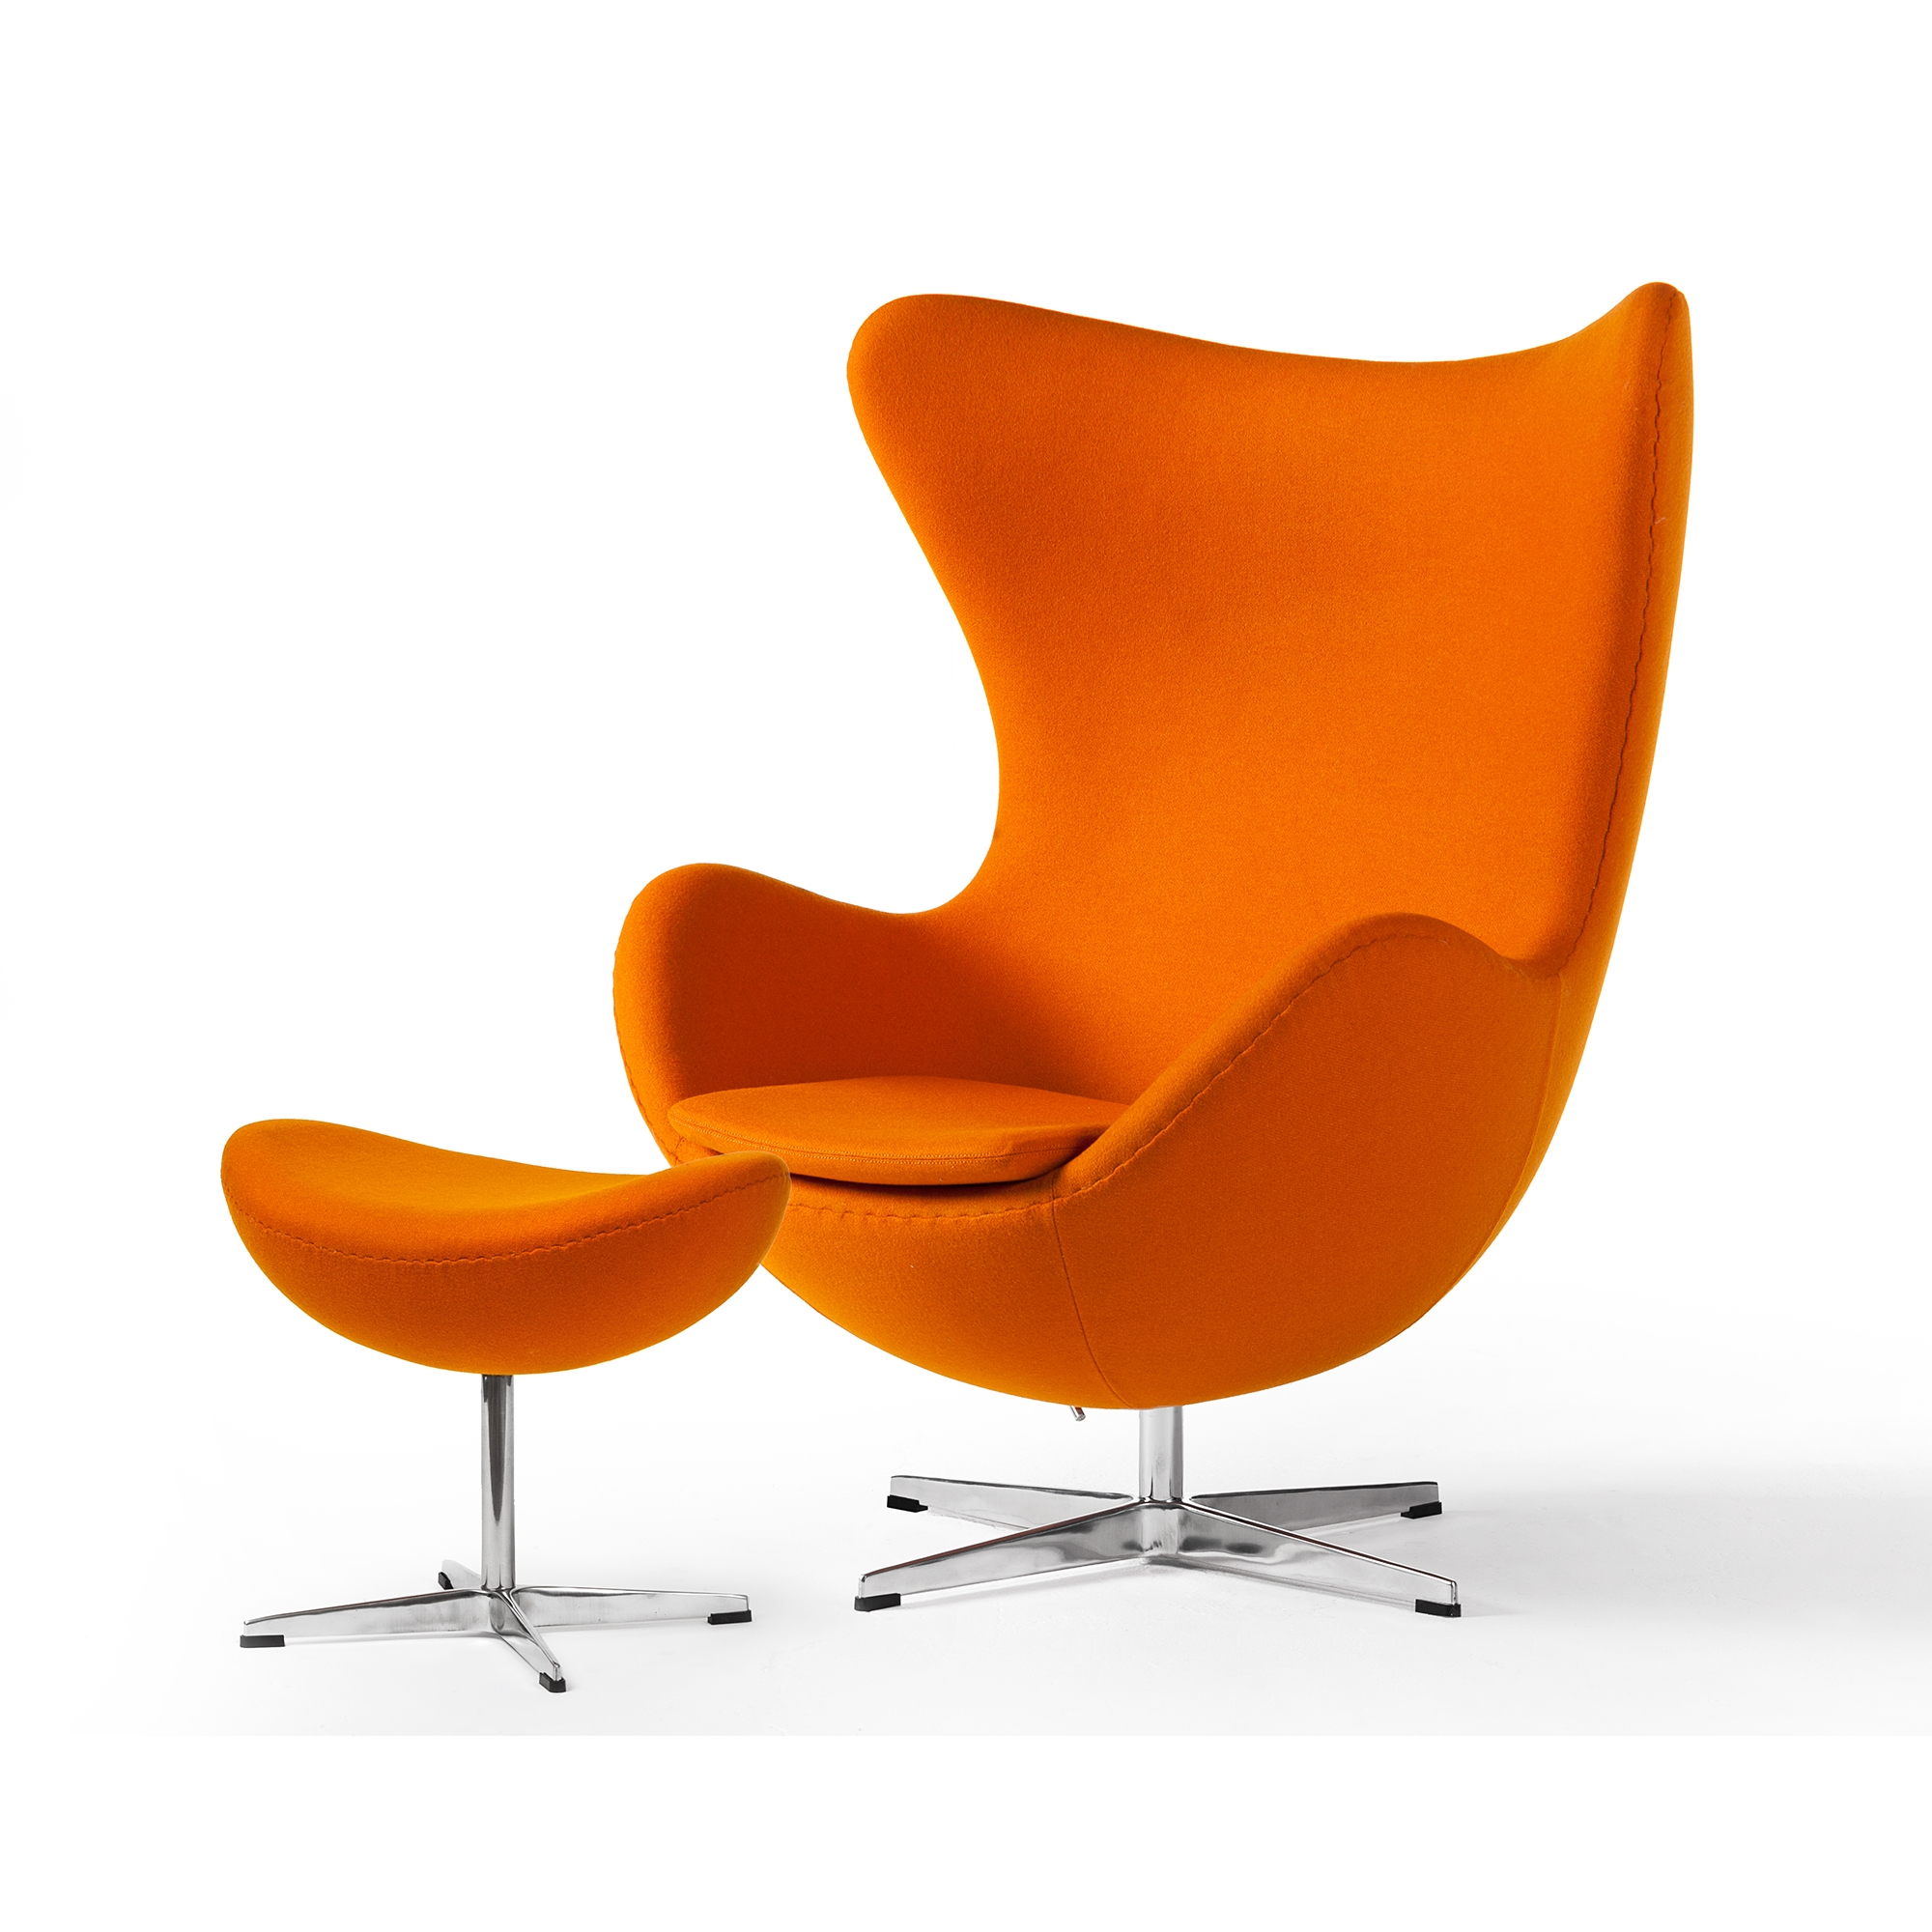 orange egg chair directors canvas replacement covers arne jacobsen inspired swivel in cashmere with tilt function the khazana home austin furniture store